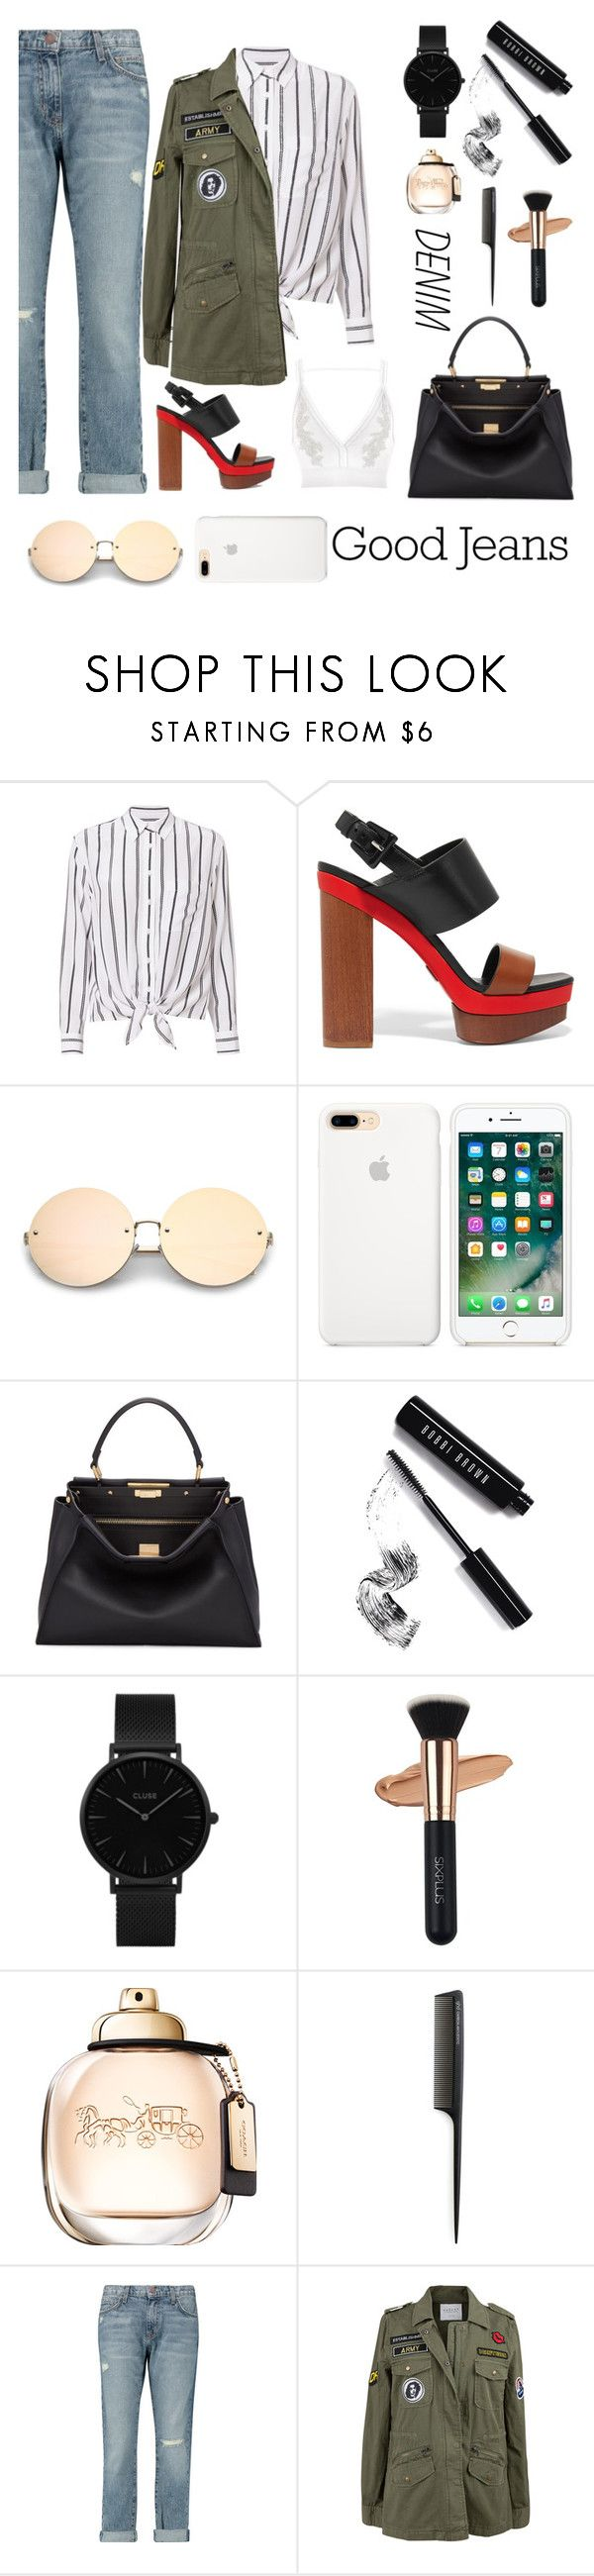 """""""Good jeans"""" by bartivana ❤ liked on Polyvore featuring Equipment, Michael Kors, Fendi, Bobbi Brown Cosmetics, CLUSE, GHD, Current/Elliott, Velvet by Graham & Spencer and River Island"""